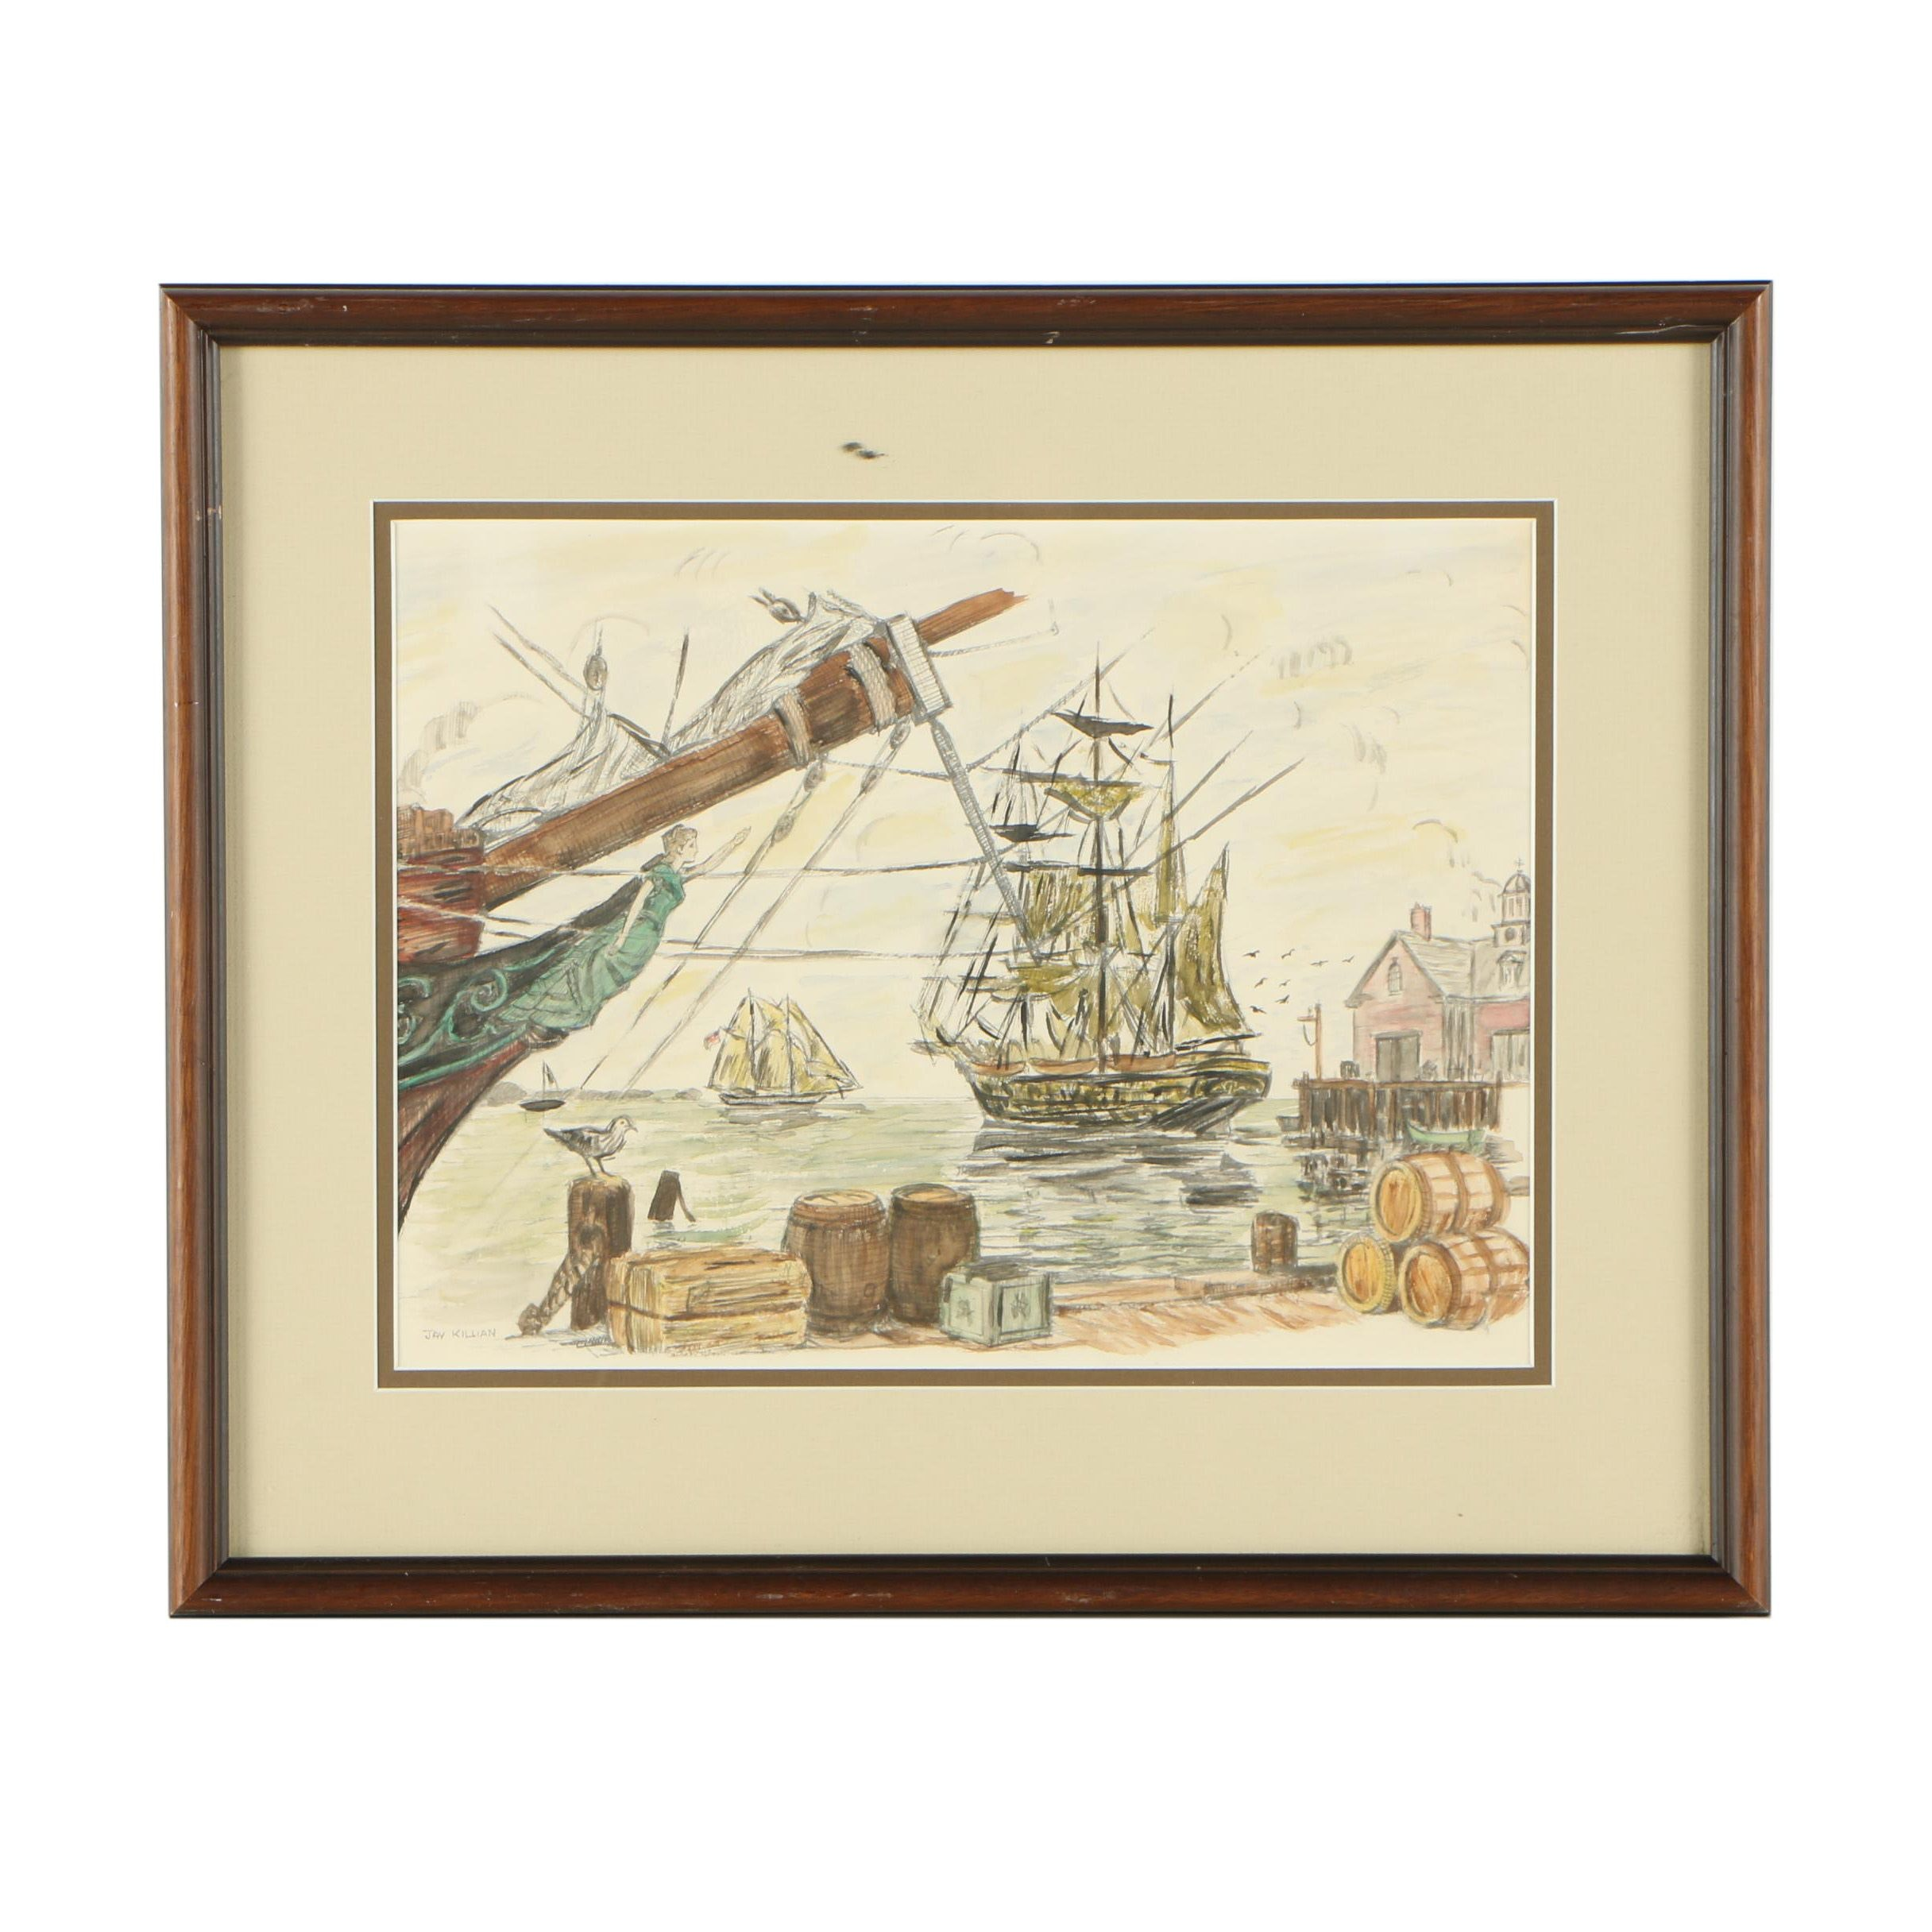 Hand Colored Offset Lithograph of Ship in Harbor After Jay Killian